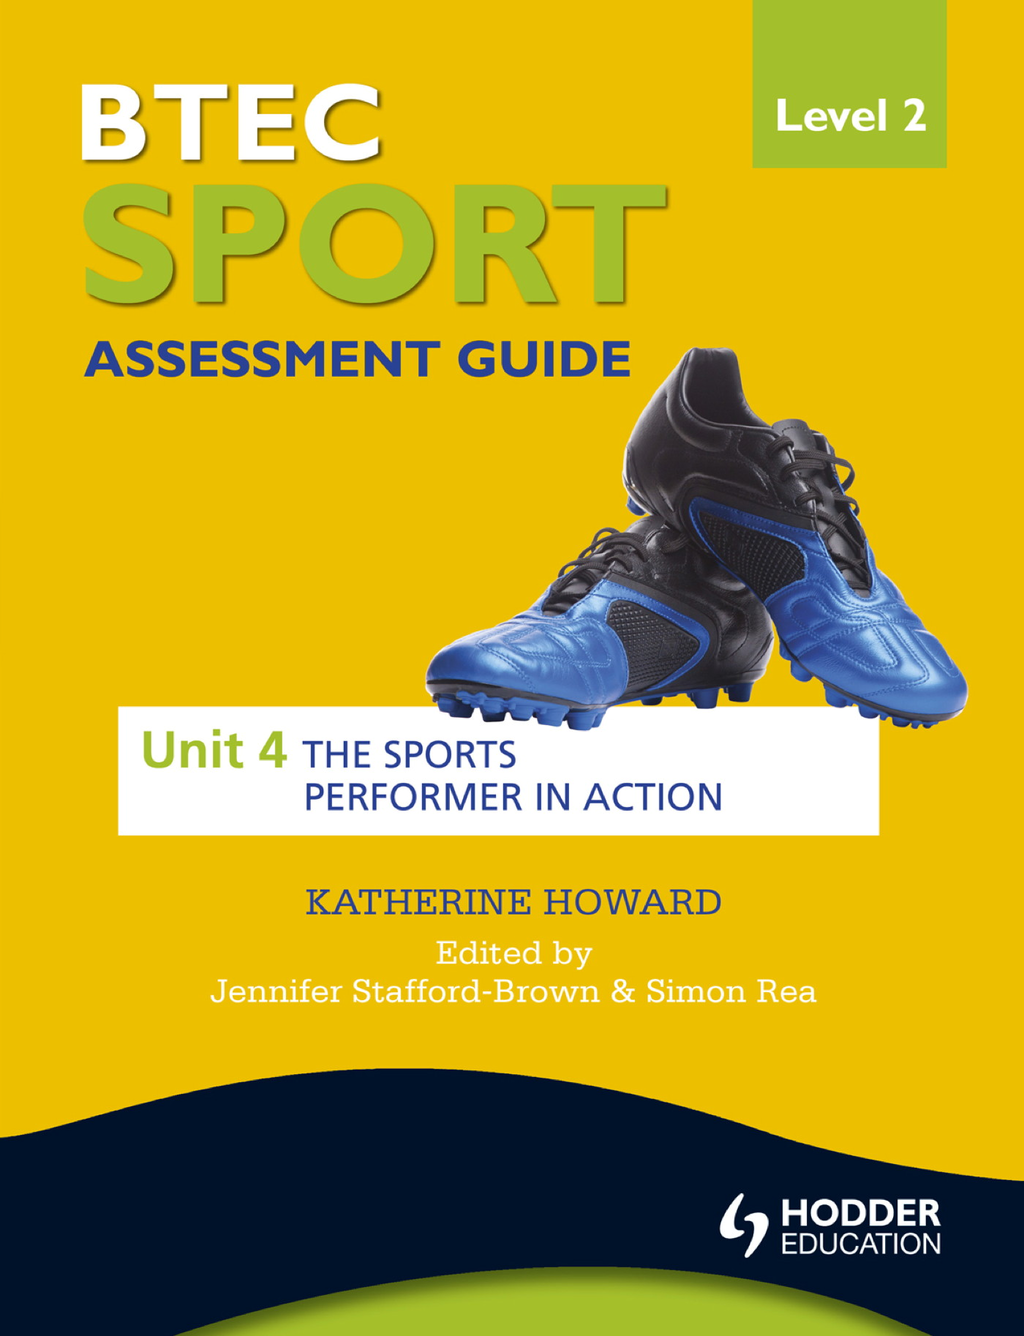 BTEC Sport Level 2 Assessment Guide: Unit 4 The Sports Performer in Action